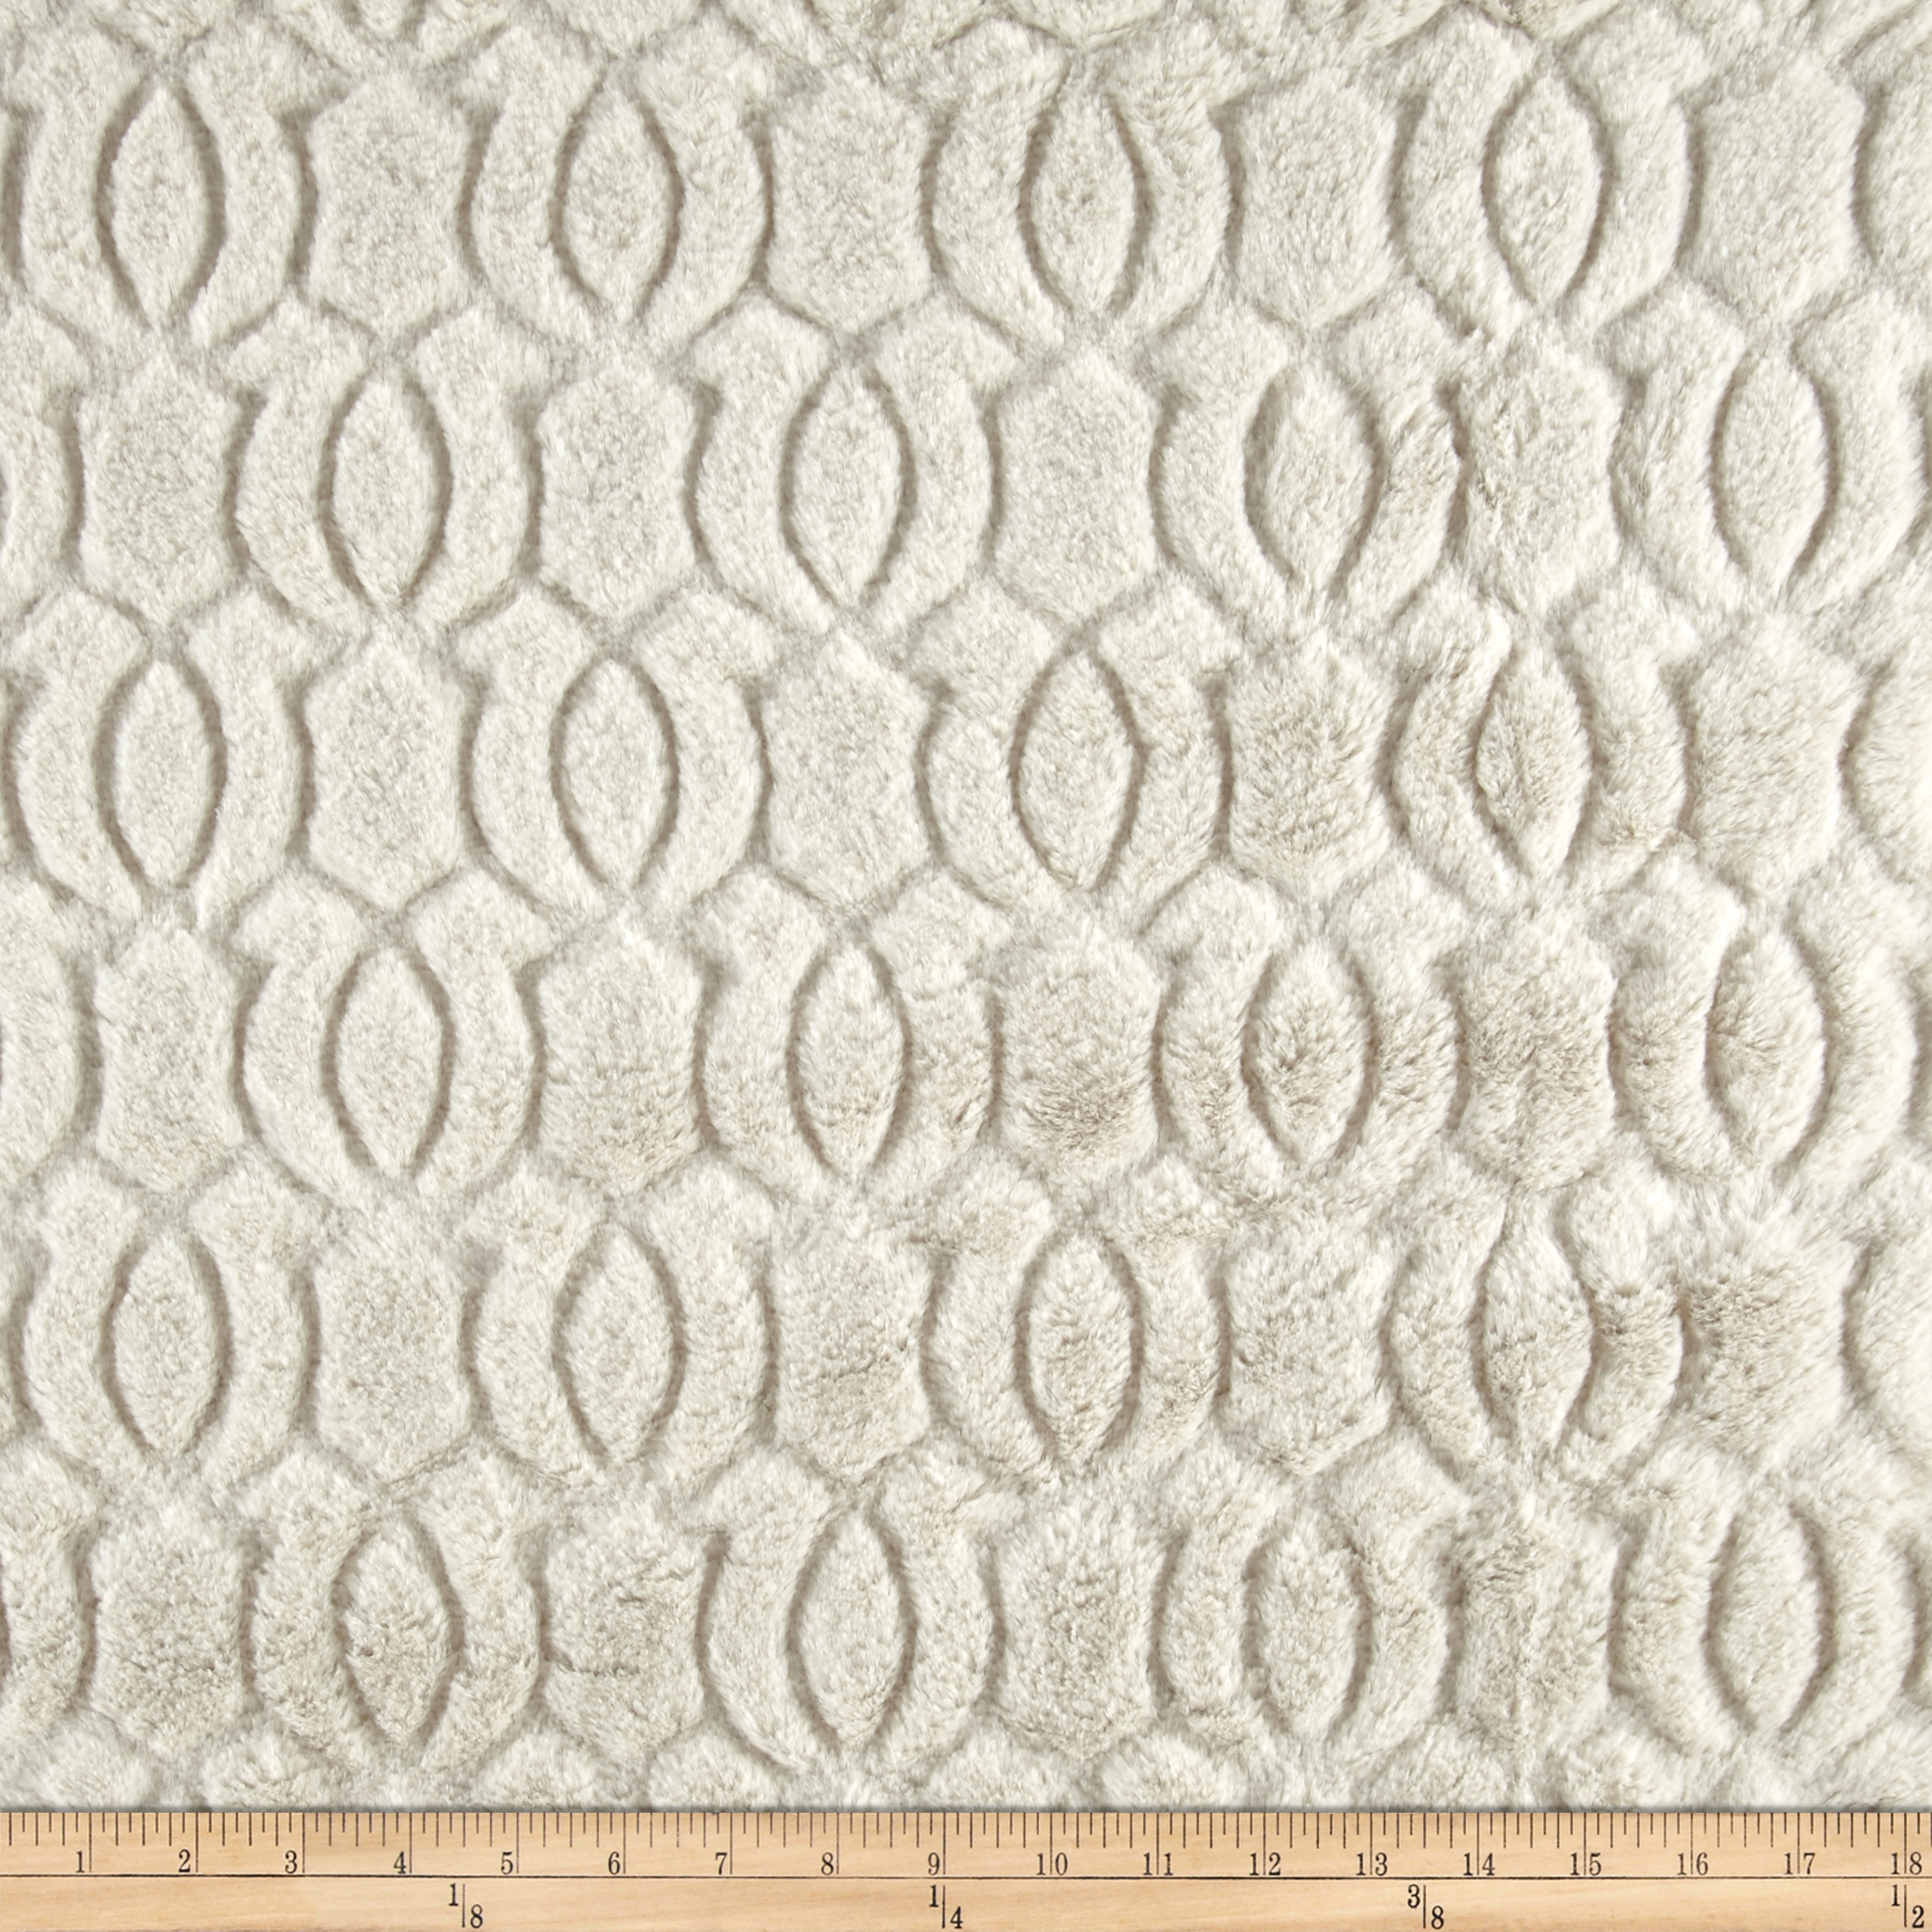 Minky Moscow Snuggle Platinum Fabric by E.Z Fabric in USA